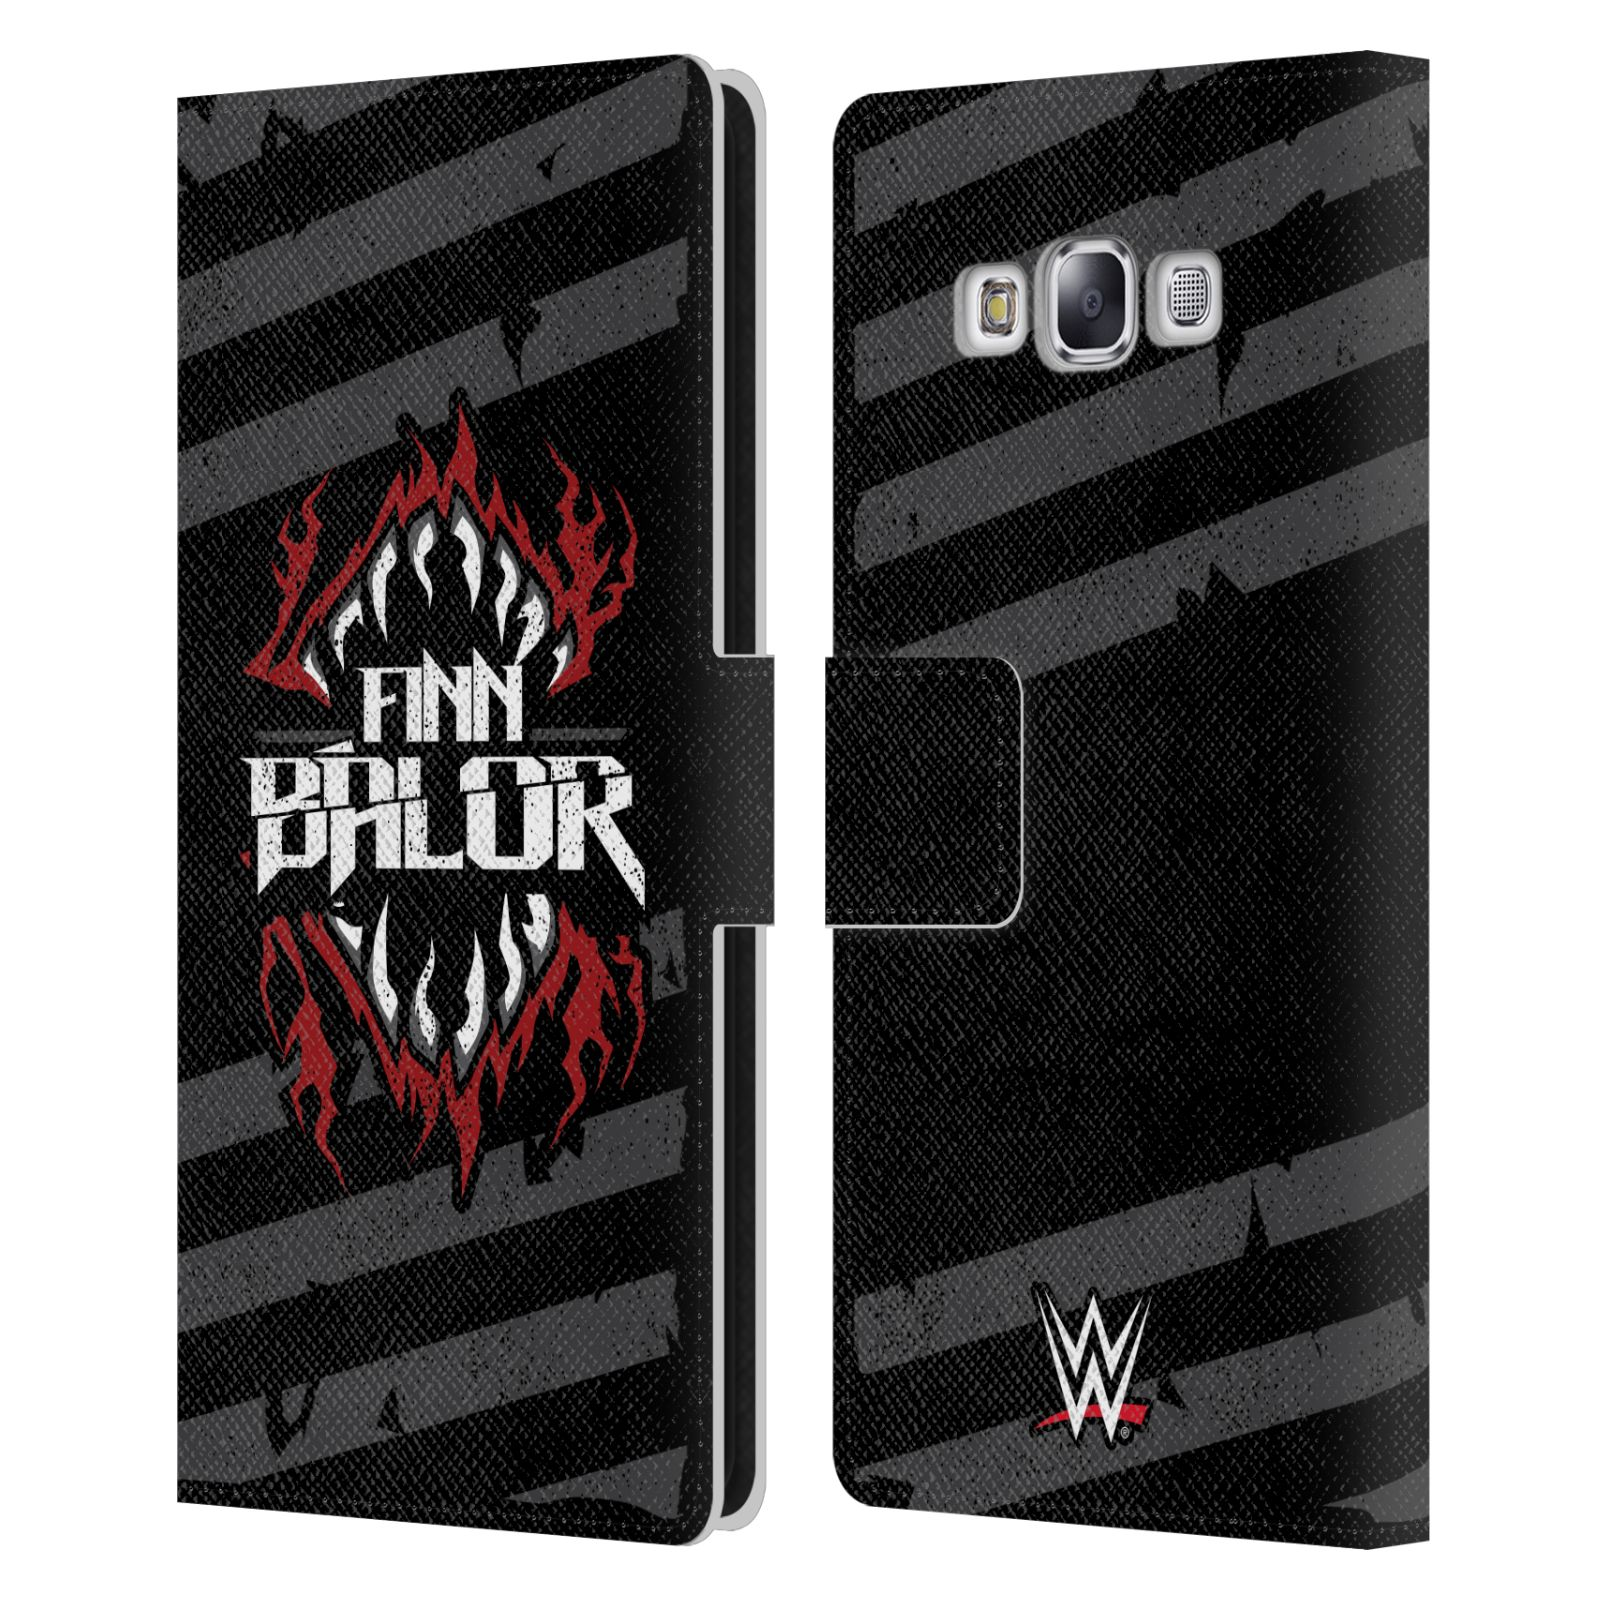 OFFICIAL-WWE-2017-FINN-BALOR-LEATHER-BOOK-WALLET-CASE-COVER-FOR-SAMSUNG-PHONES-3